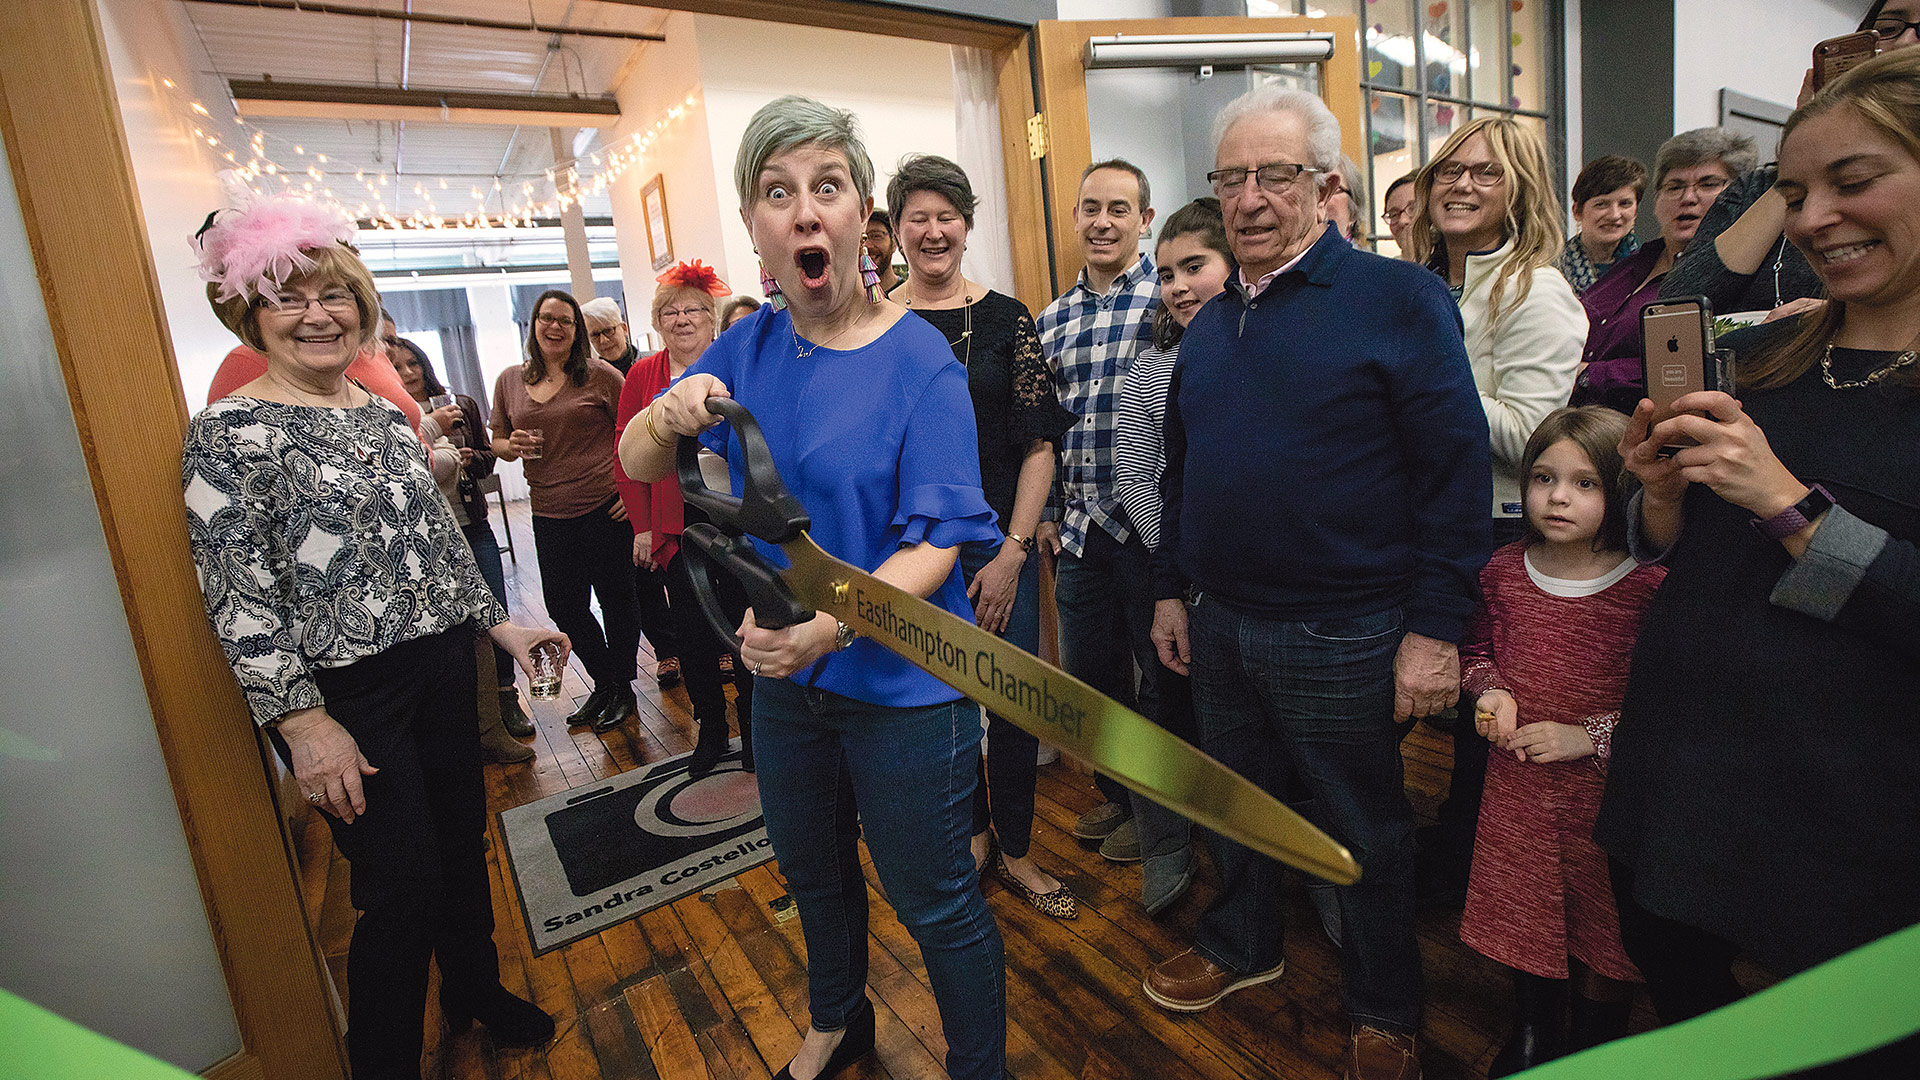 Sandra Costello, owner of Sandra Costello Photography, cuts the ribbon to the opening of her new photography studio in the Eastworks Building in Easthampton on Feb. 17. Surrounded by family, friends, and clients, Costello celebrated her new space for capturing portraits of women, families, high-school seniors, and professionals. (Photo by Ryan Williams)